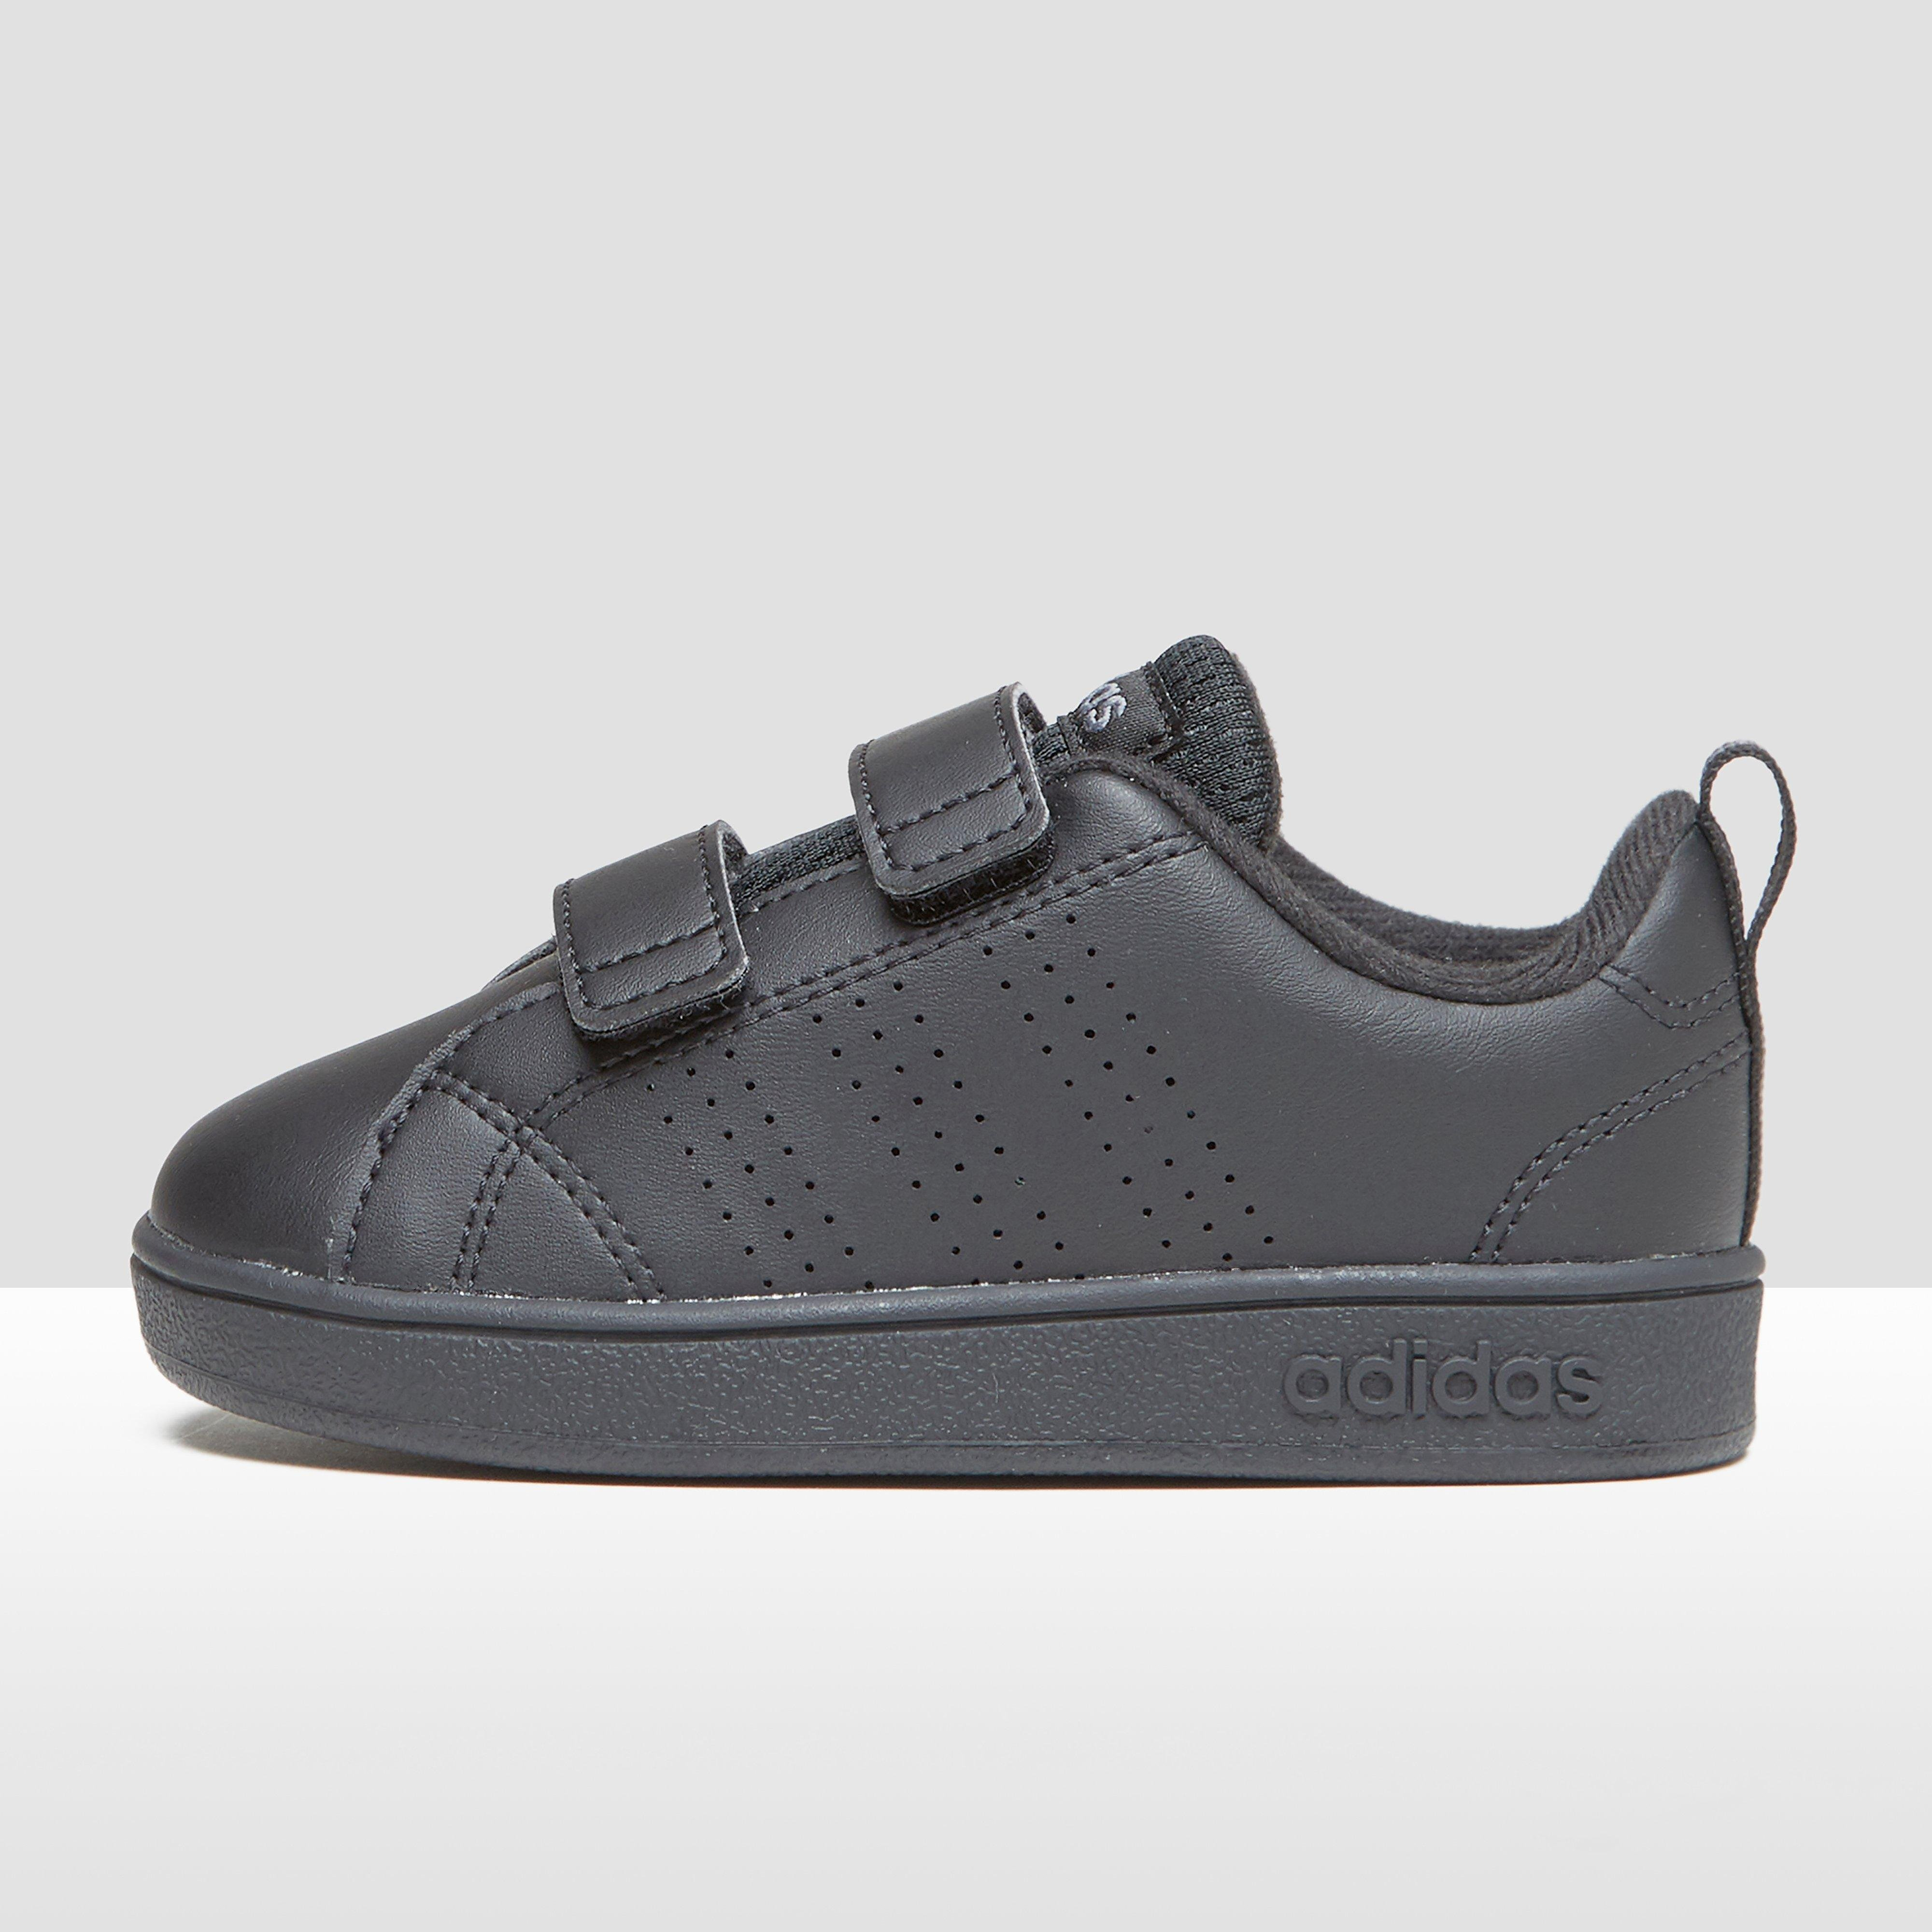 ADIDAS ADVANTAGE CLEAN VS SNEAKERS ZWART KINDEREN